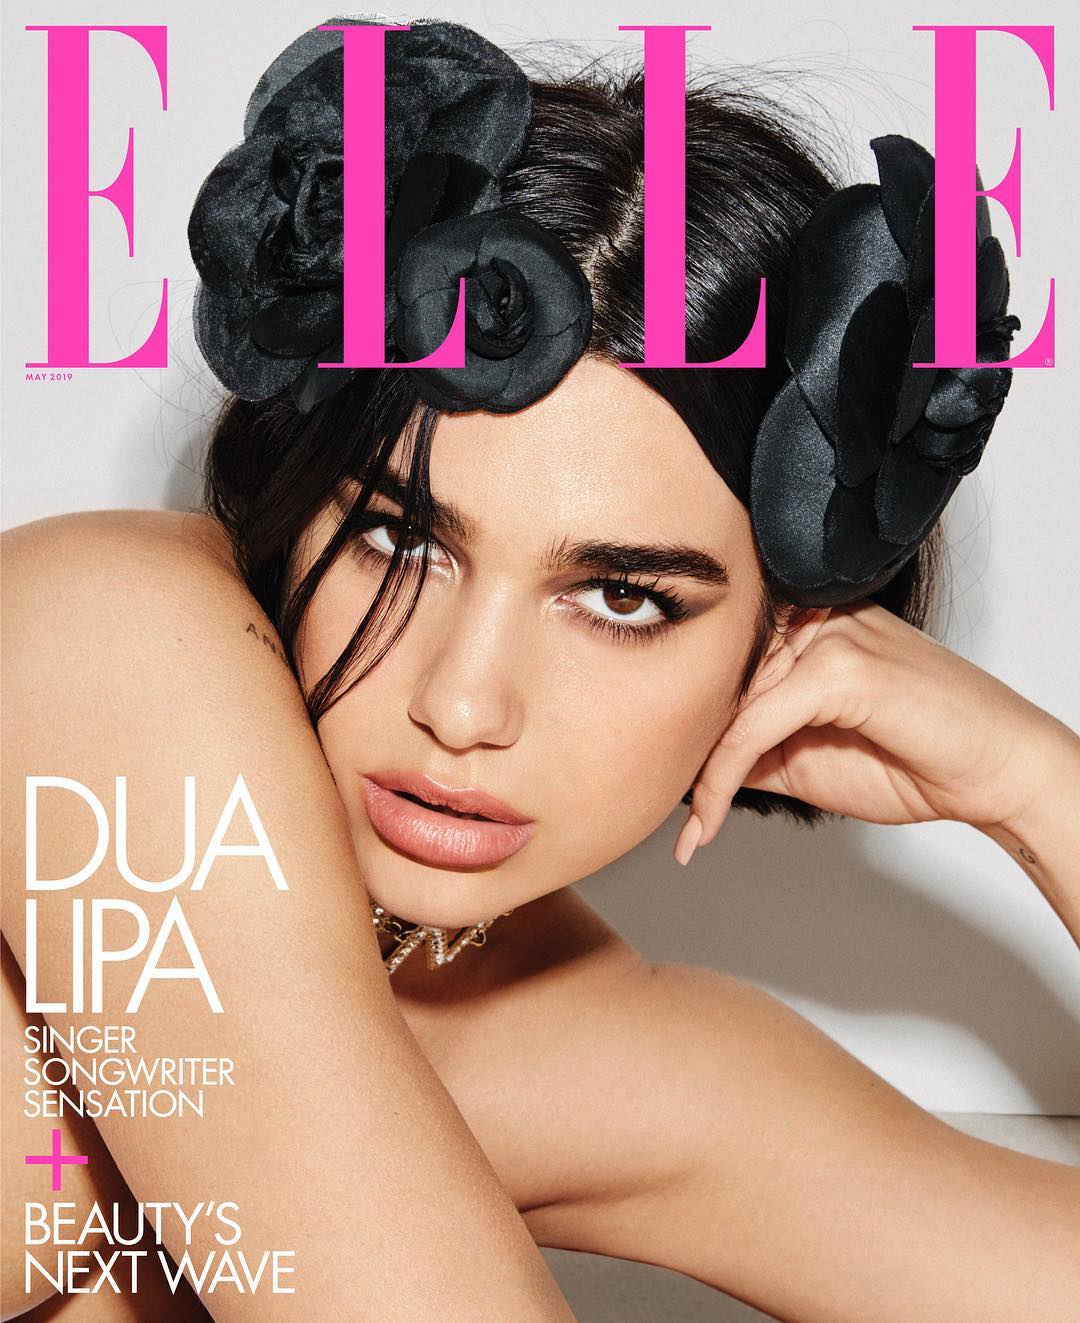 Dua Lipa On Cover Page Of Elle US - May 2019 1